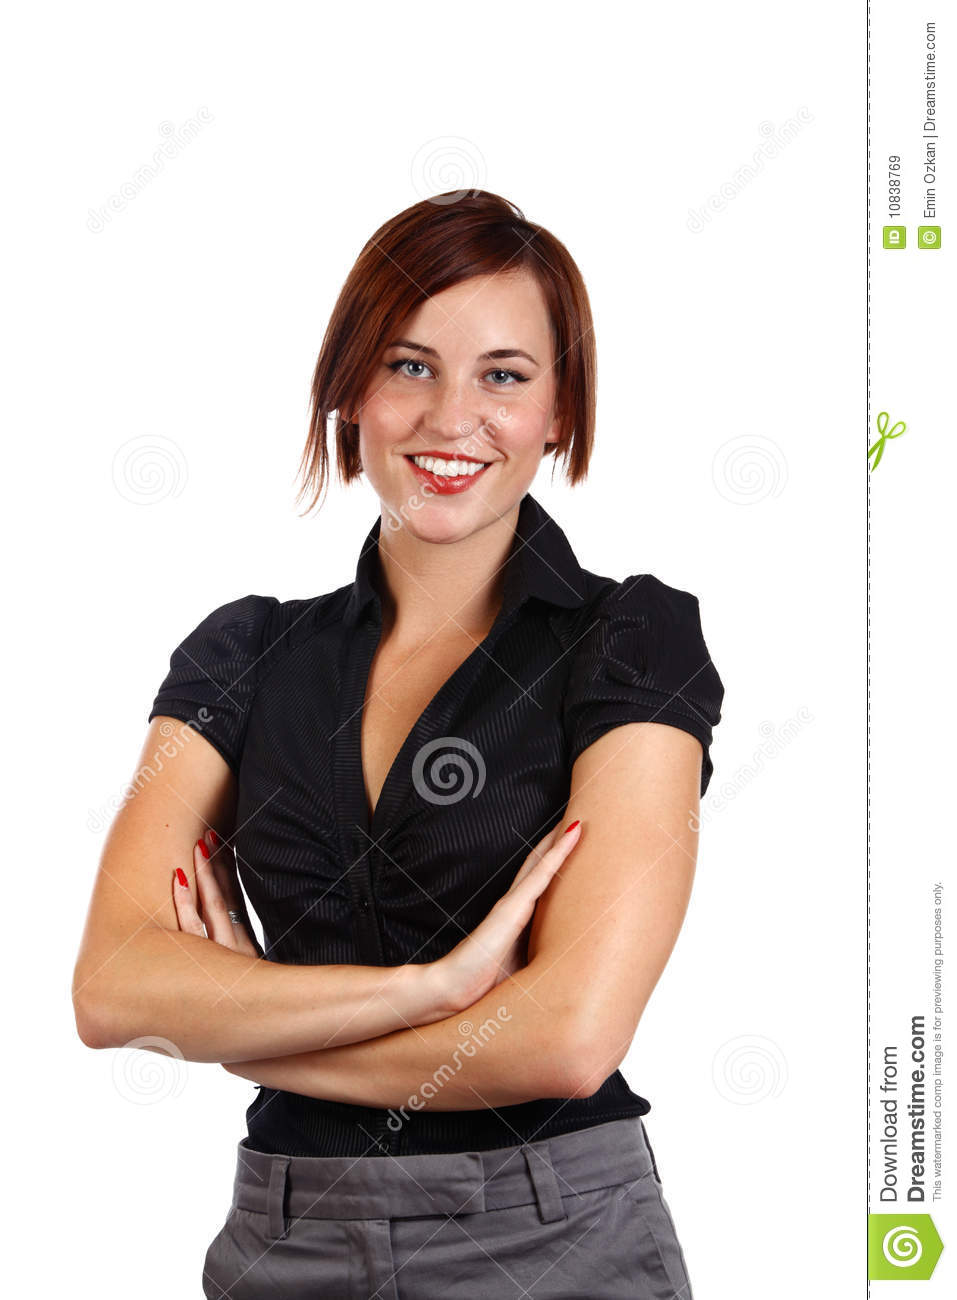 Businesswoman Standing Royalty Free Stock Images - Image: 10838769